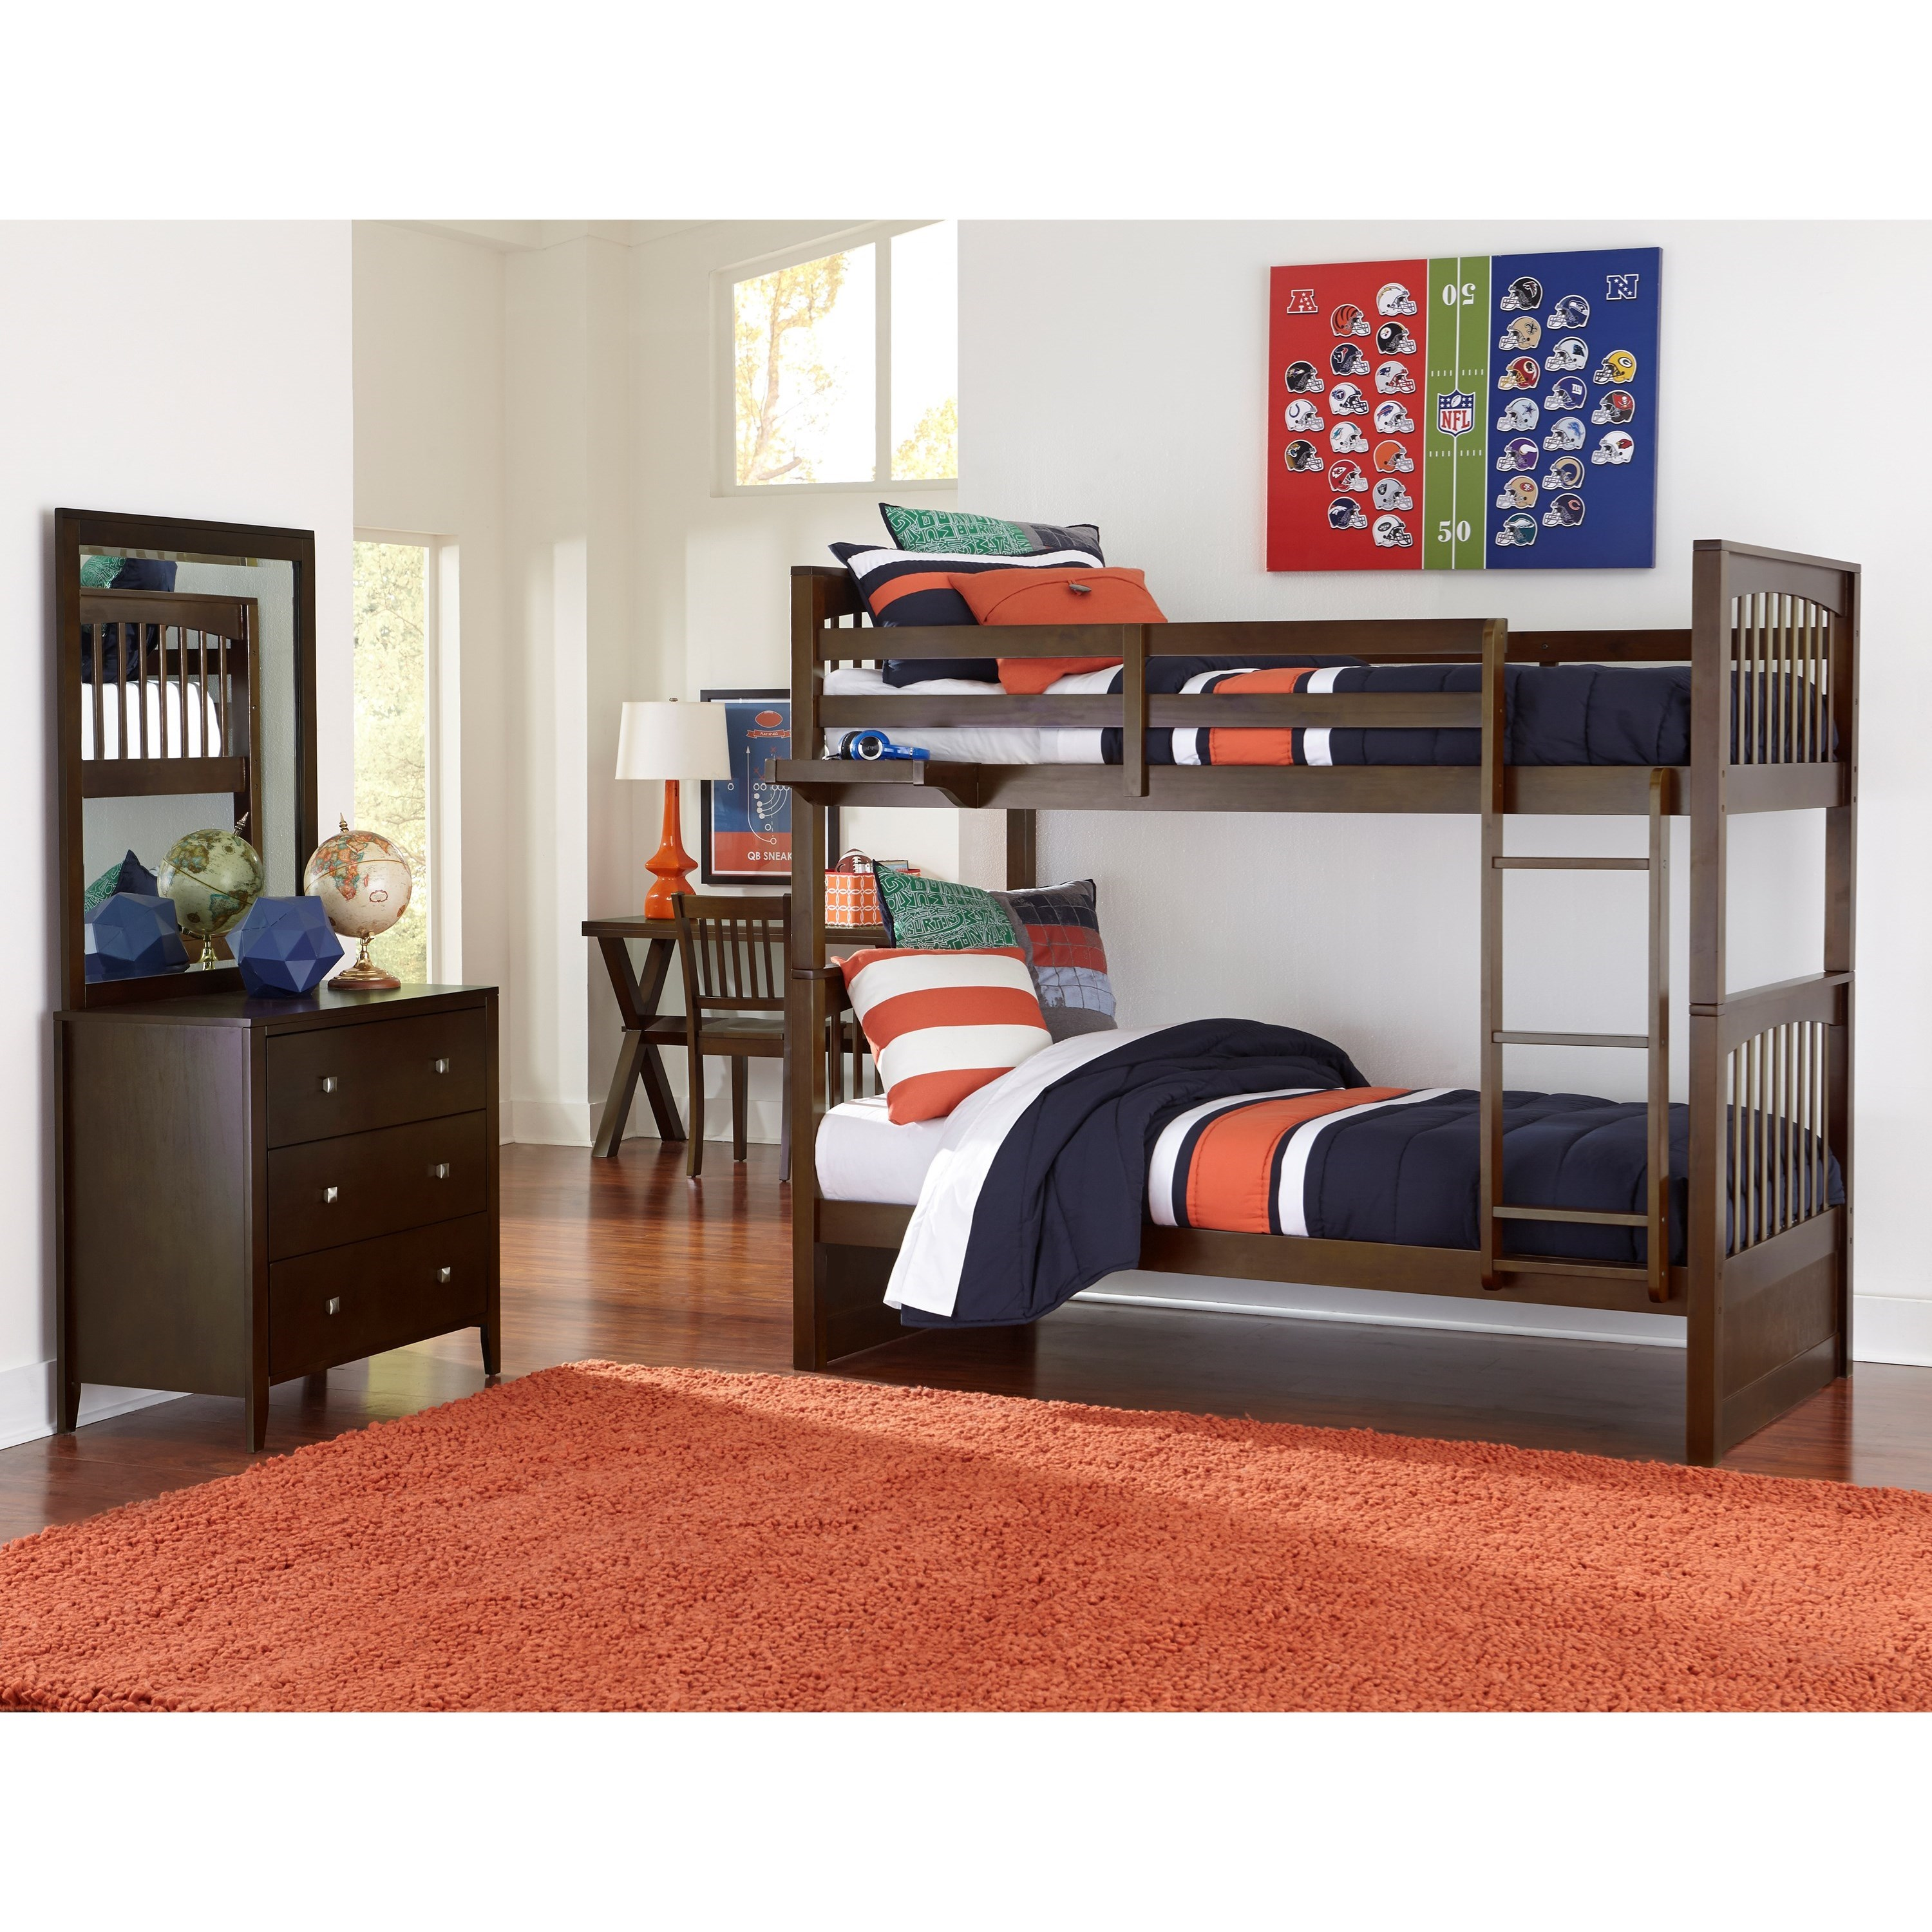 Pulse Twin Bedroom Group by NE Kids at Goffena Furniture & Mattress Center